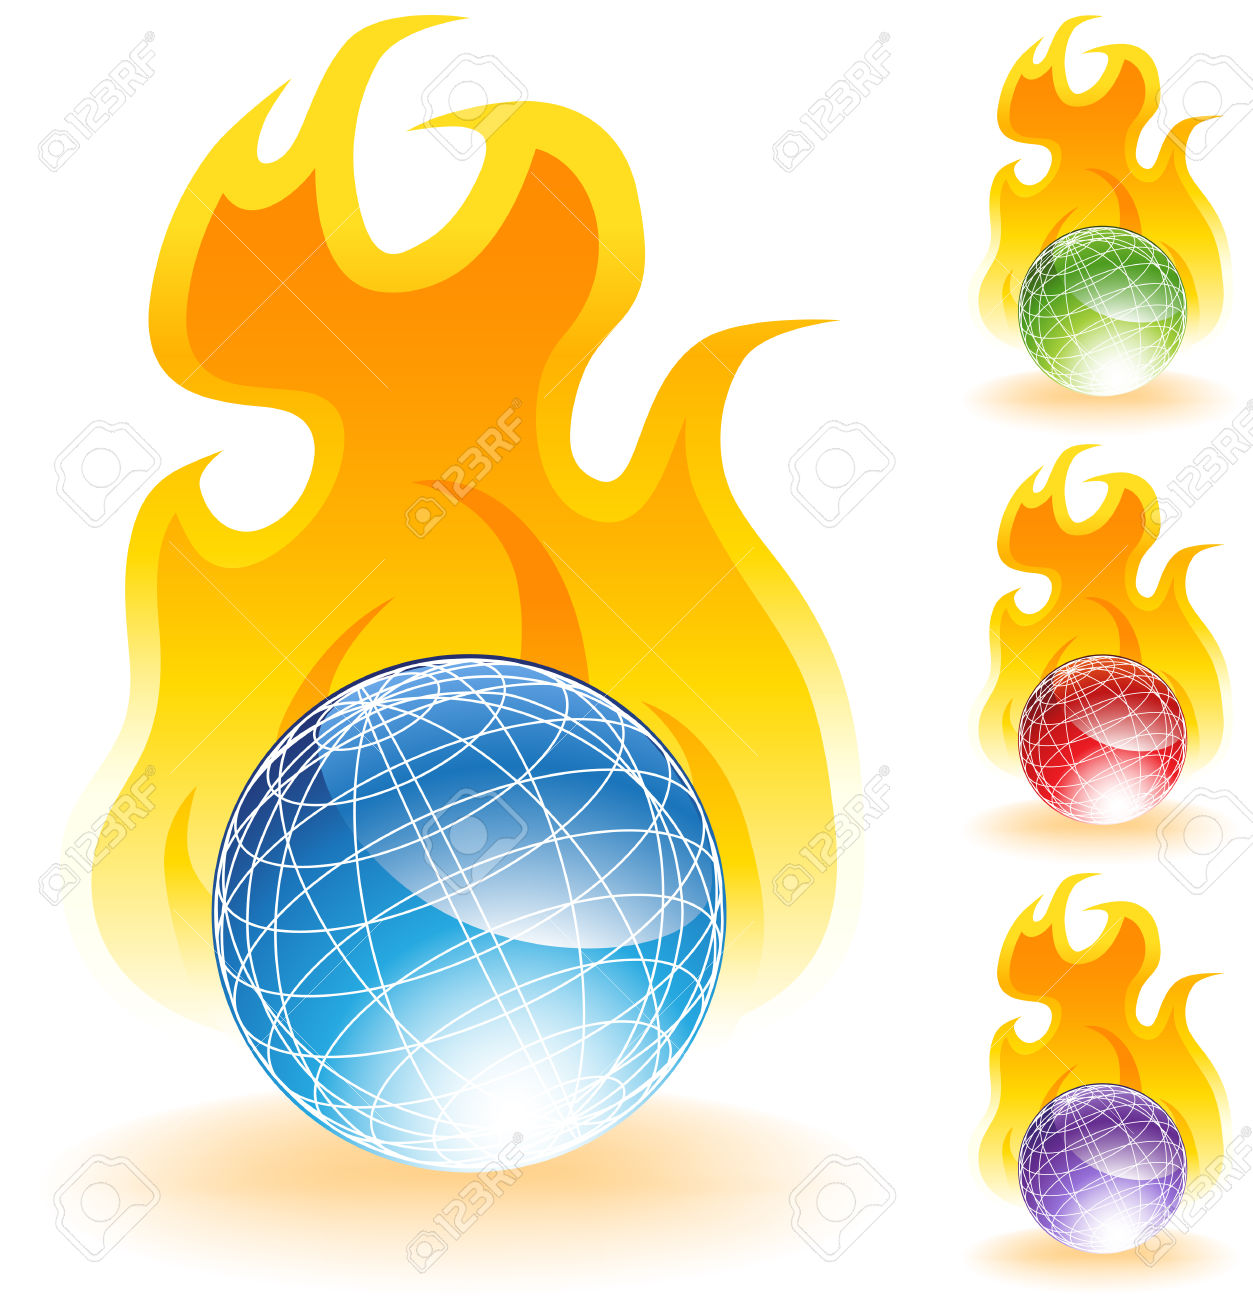 Burning World Royalty Free Cliparts, Vectors, And Stock.